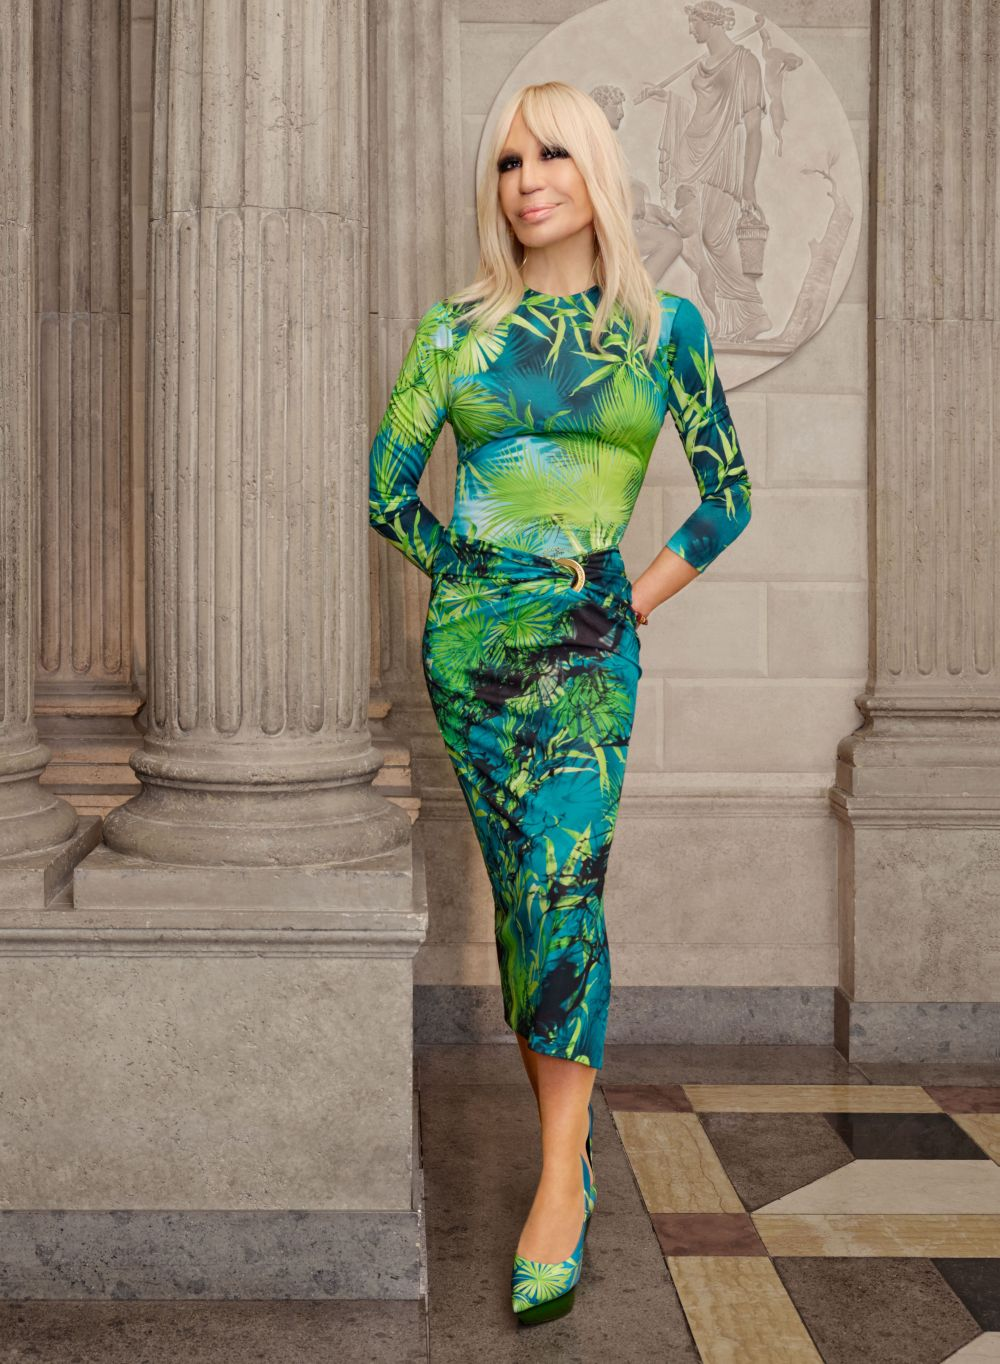 Donatella Versace Is Not Who You Think She Is